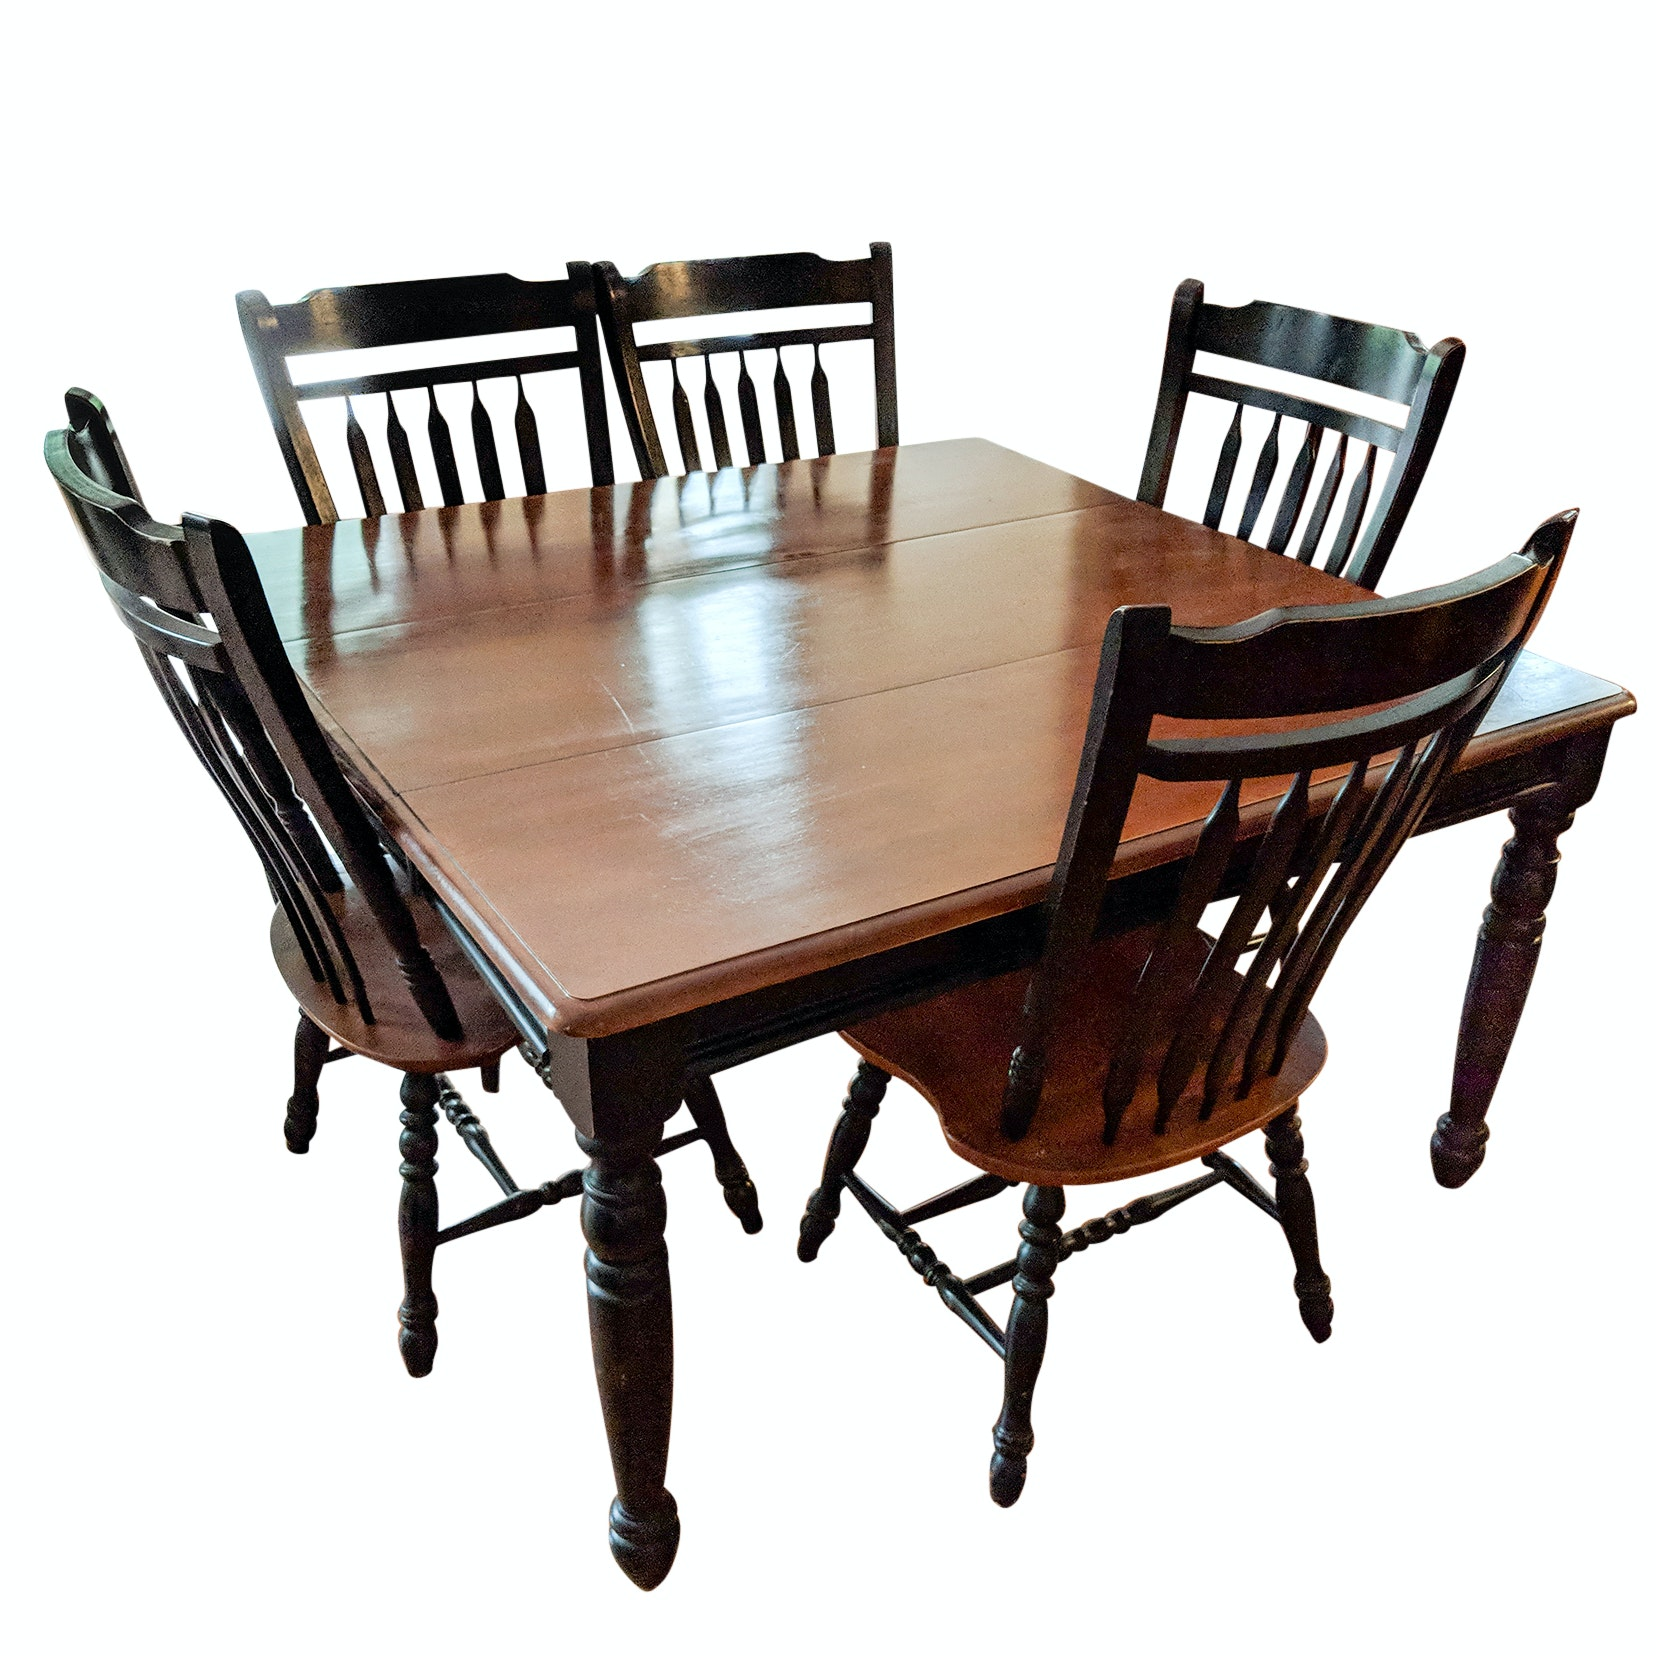 French Country Style Wood Dining Table and Bannister Chairs